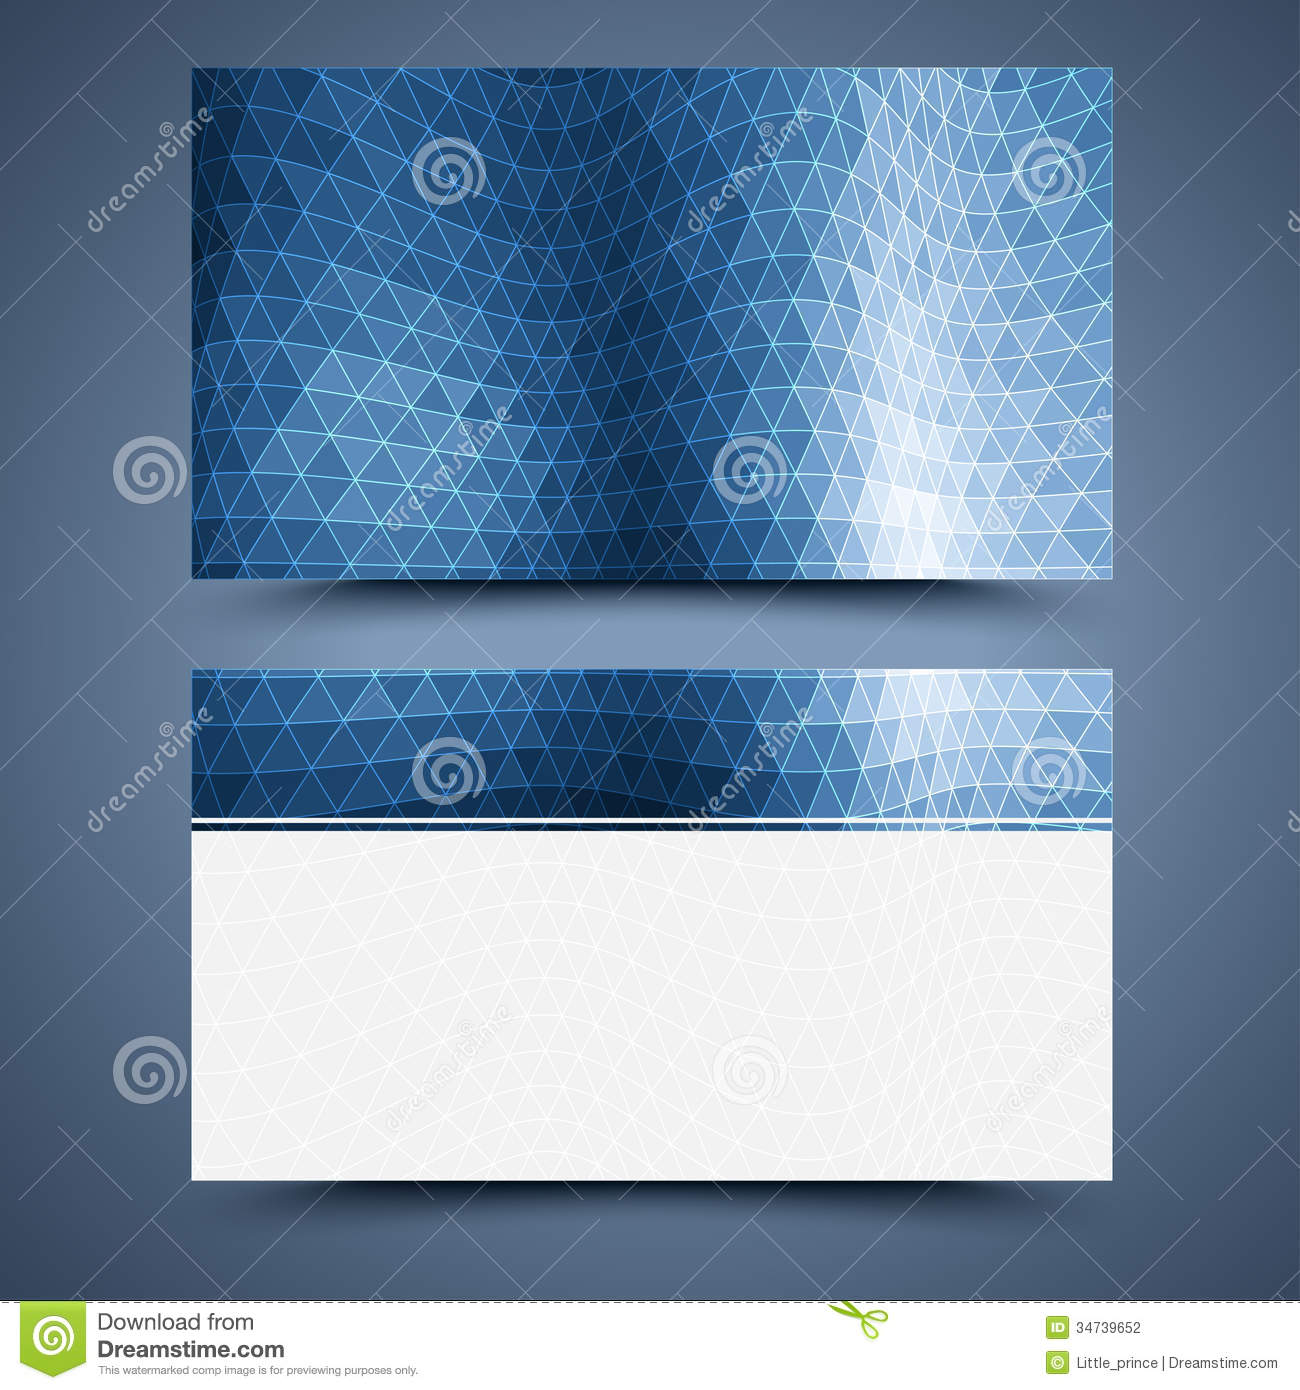 Blue business card template abstract background stock vector download blue business card template abstract background stock vector illustration of graphic backgrounds wajeb